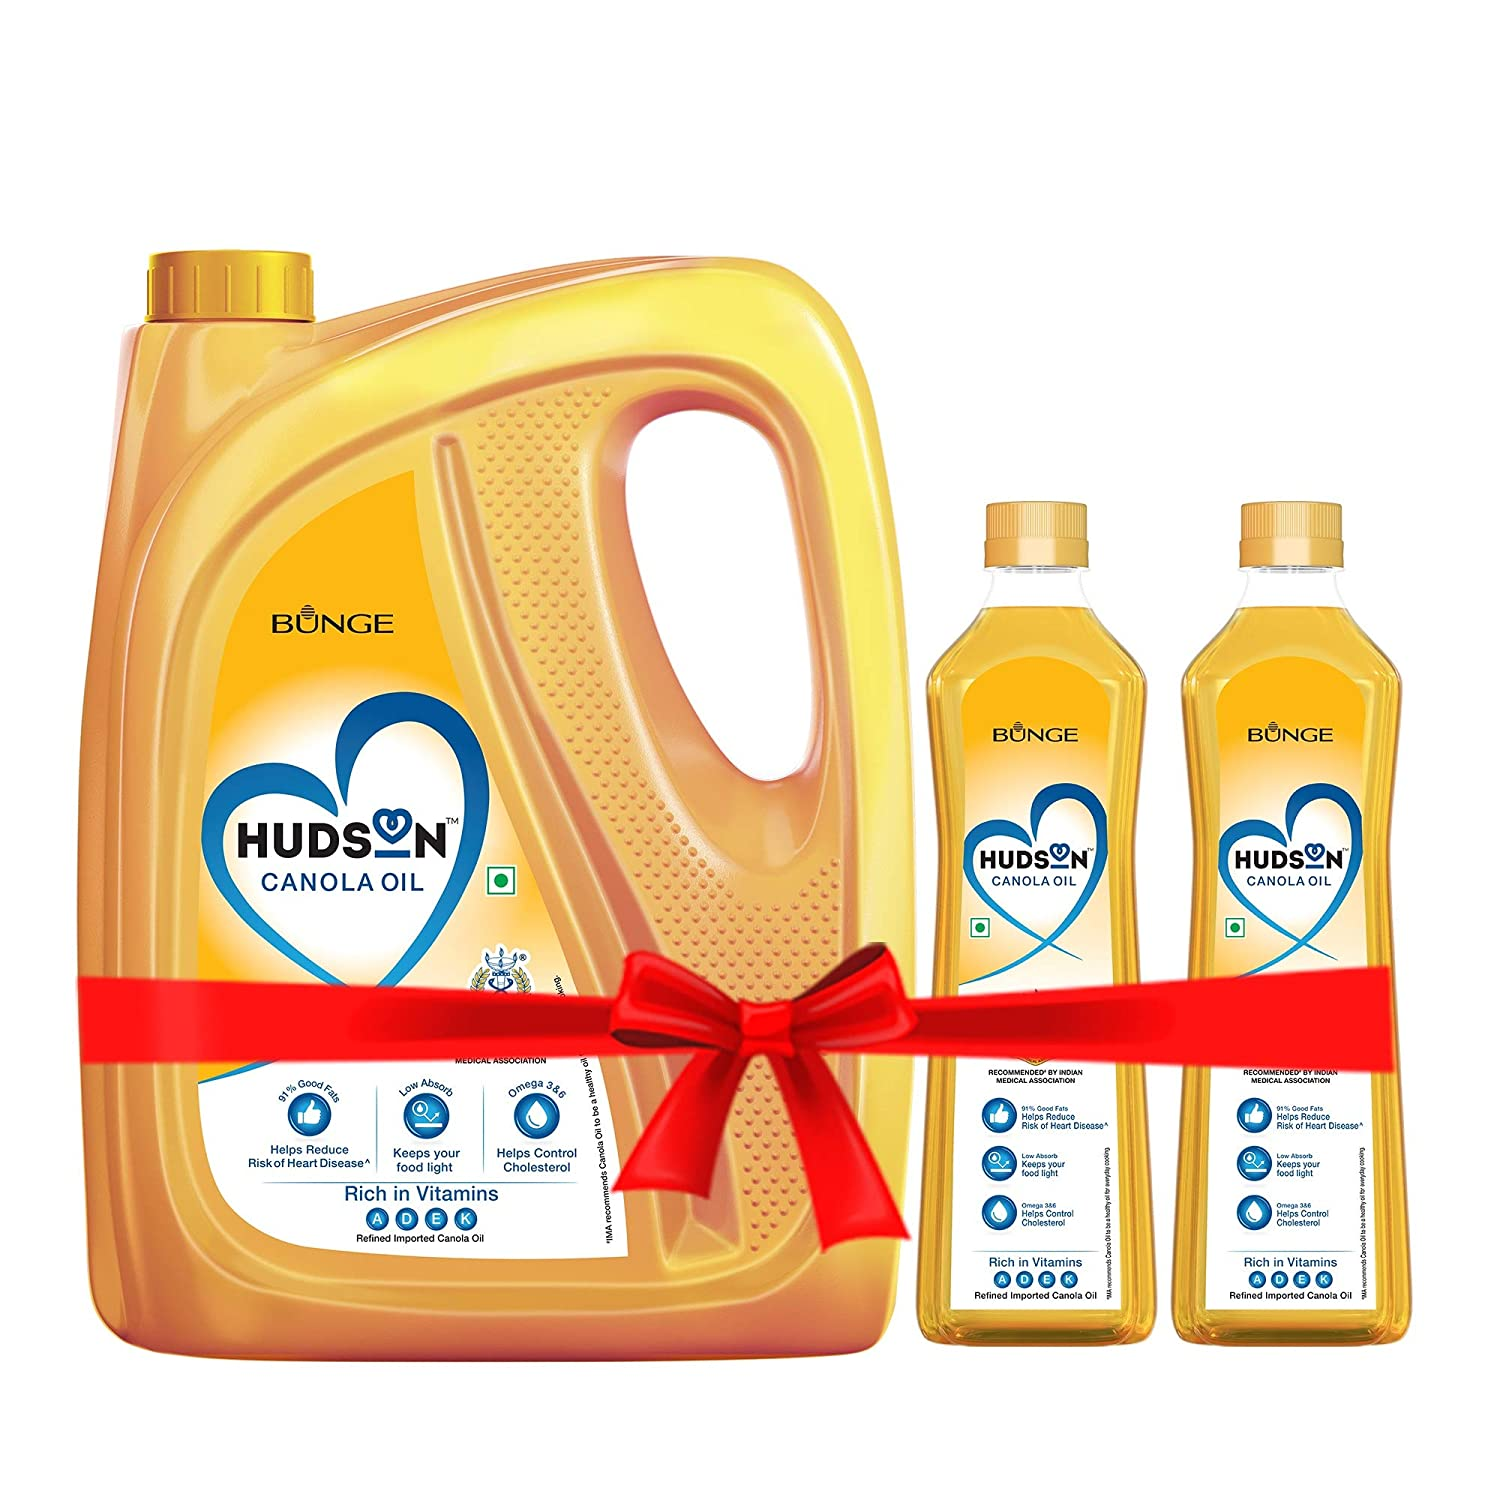 Hudson Canola Oil, Healthiest Cooking Oil, Indian Medical Association Recommended- 5L with 2L Free